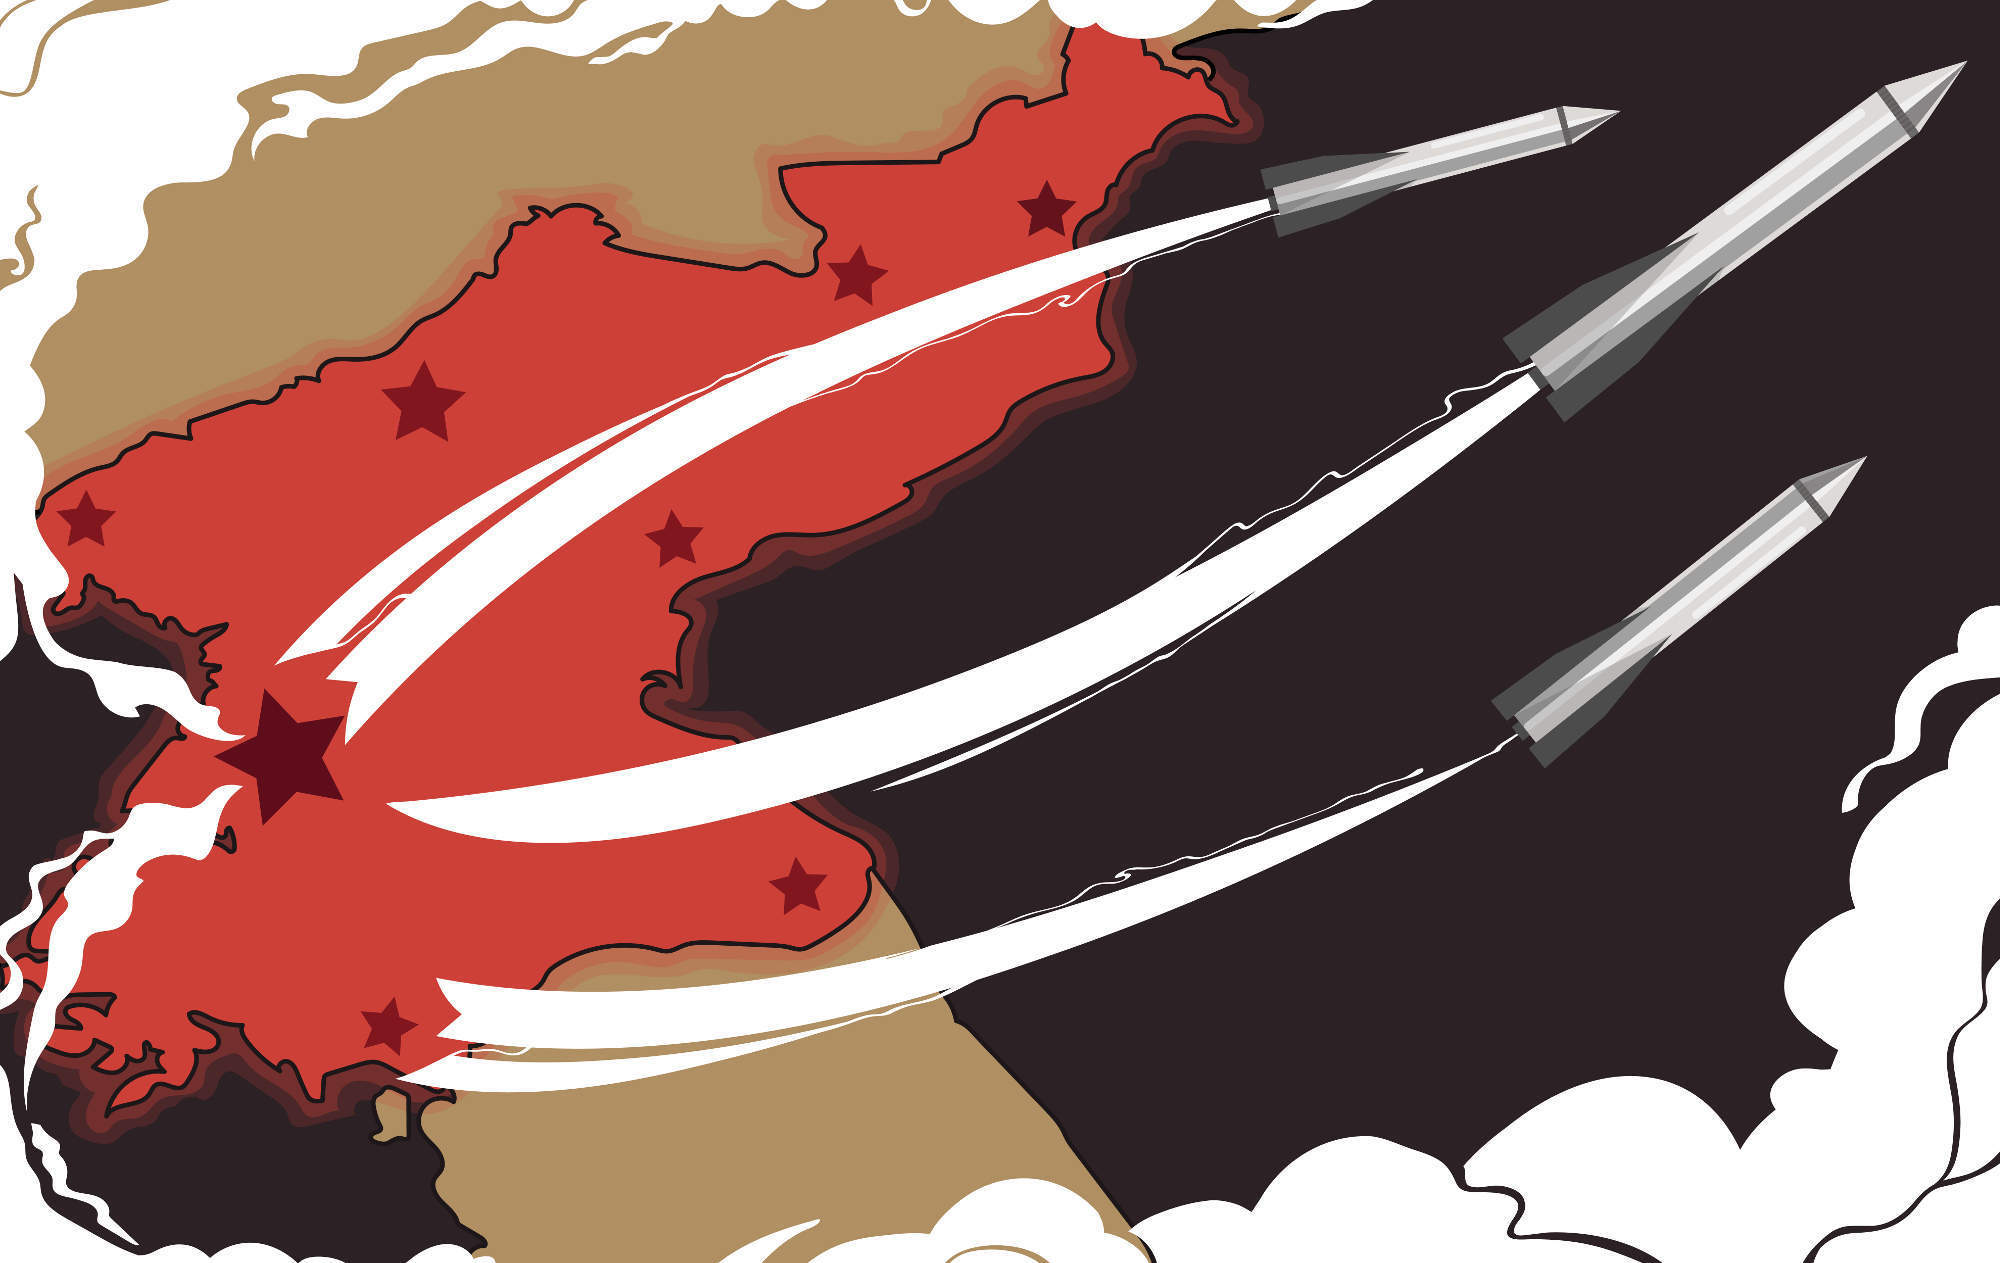 Some theories on why North Korea picked 2017 to threaten the West with nuclear war